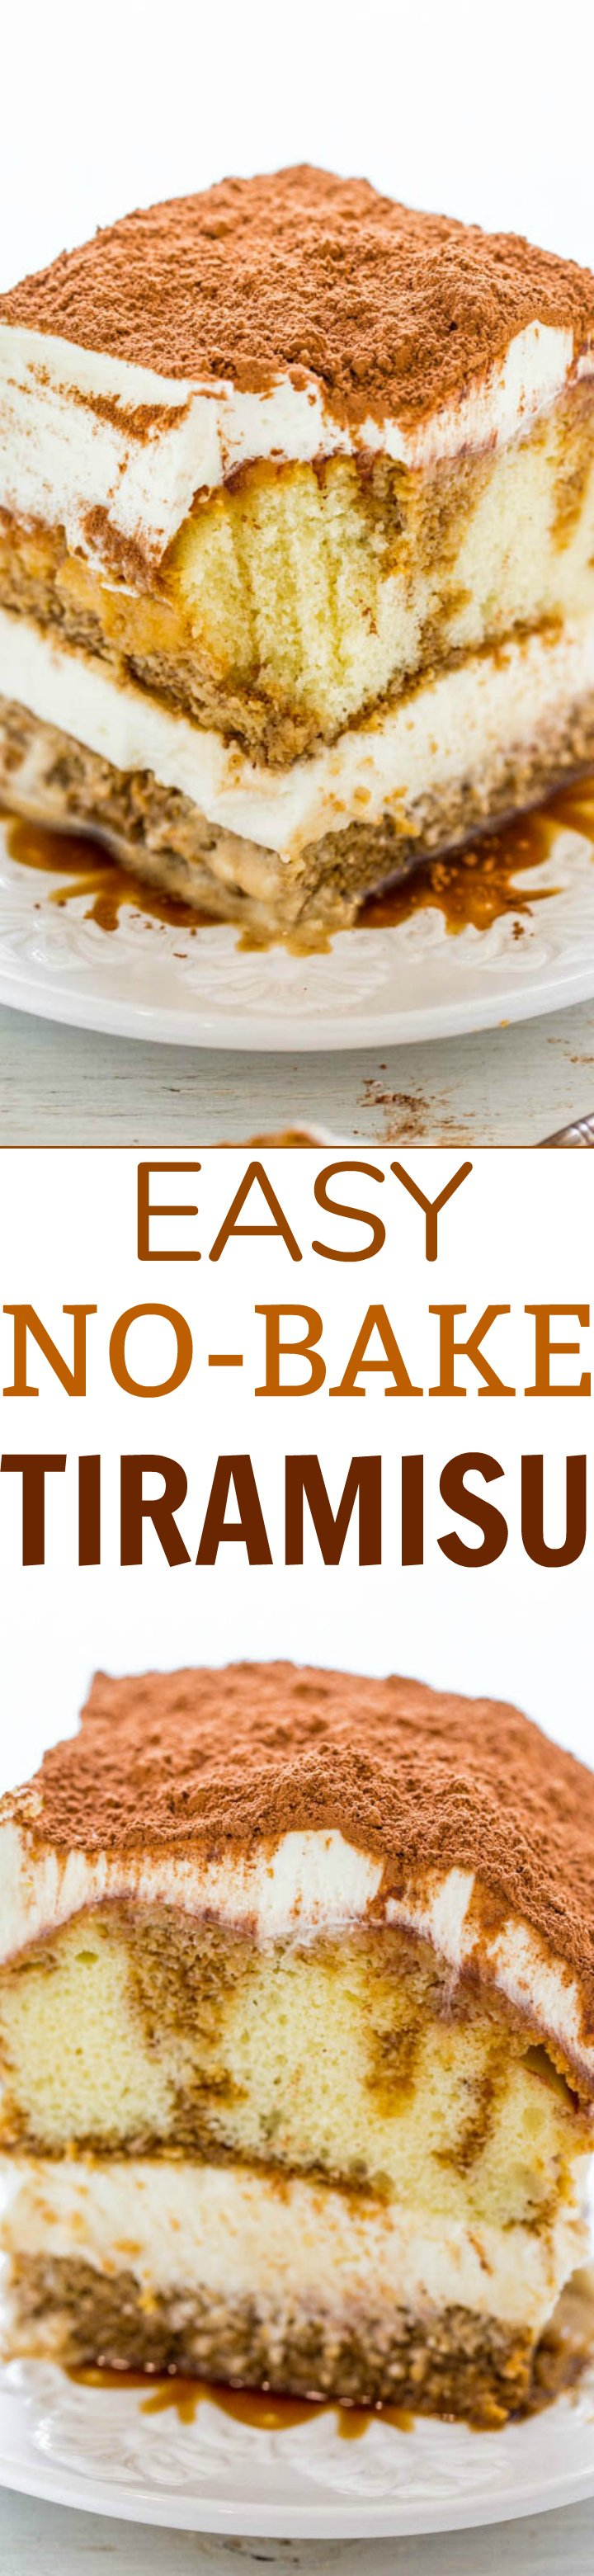 Easy No-Bake Tiramisu - FAST, no-bake, and infused with the richness of espresso, Kahlua, a luscious creamy filling, and dusted with cocoa powder!! Decadent and authentic but SO EASY!!